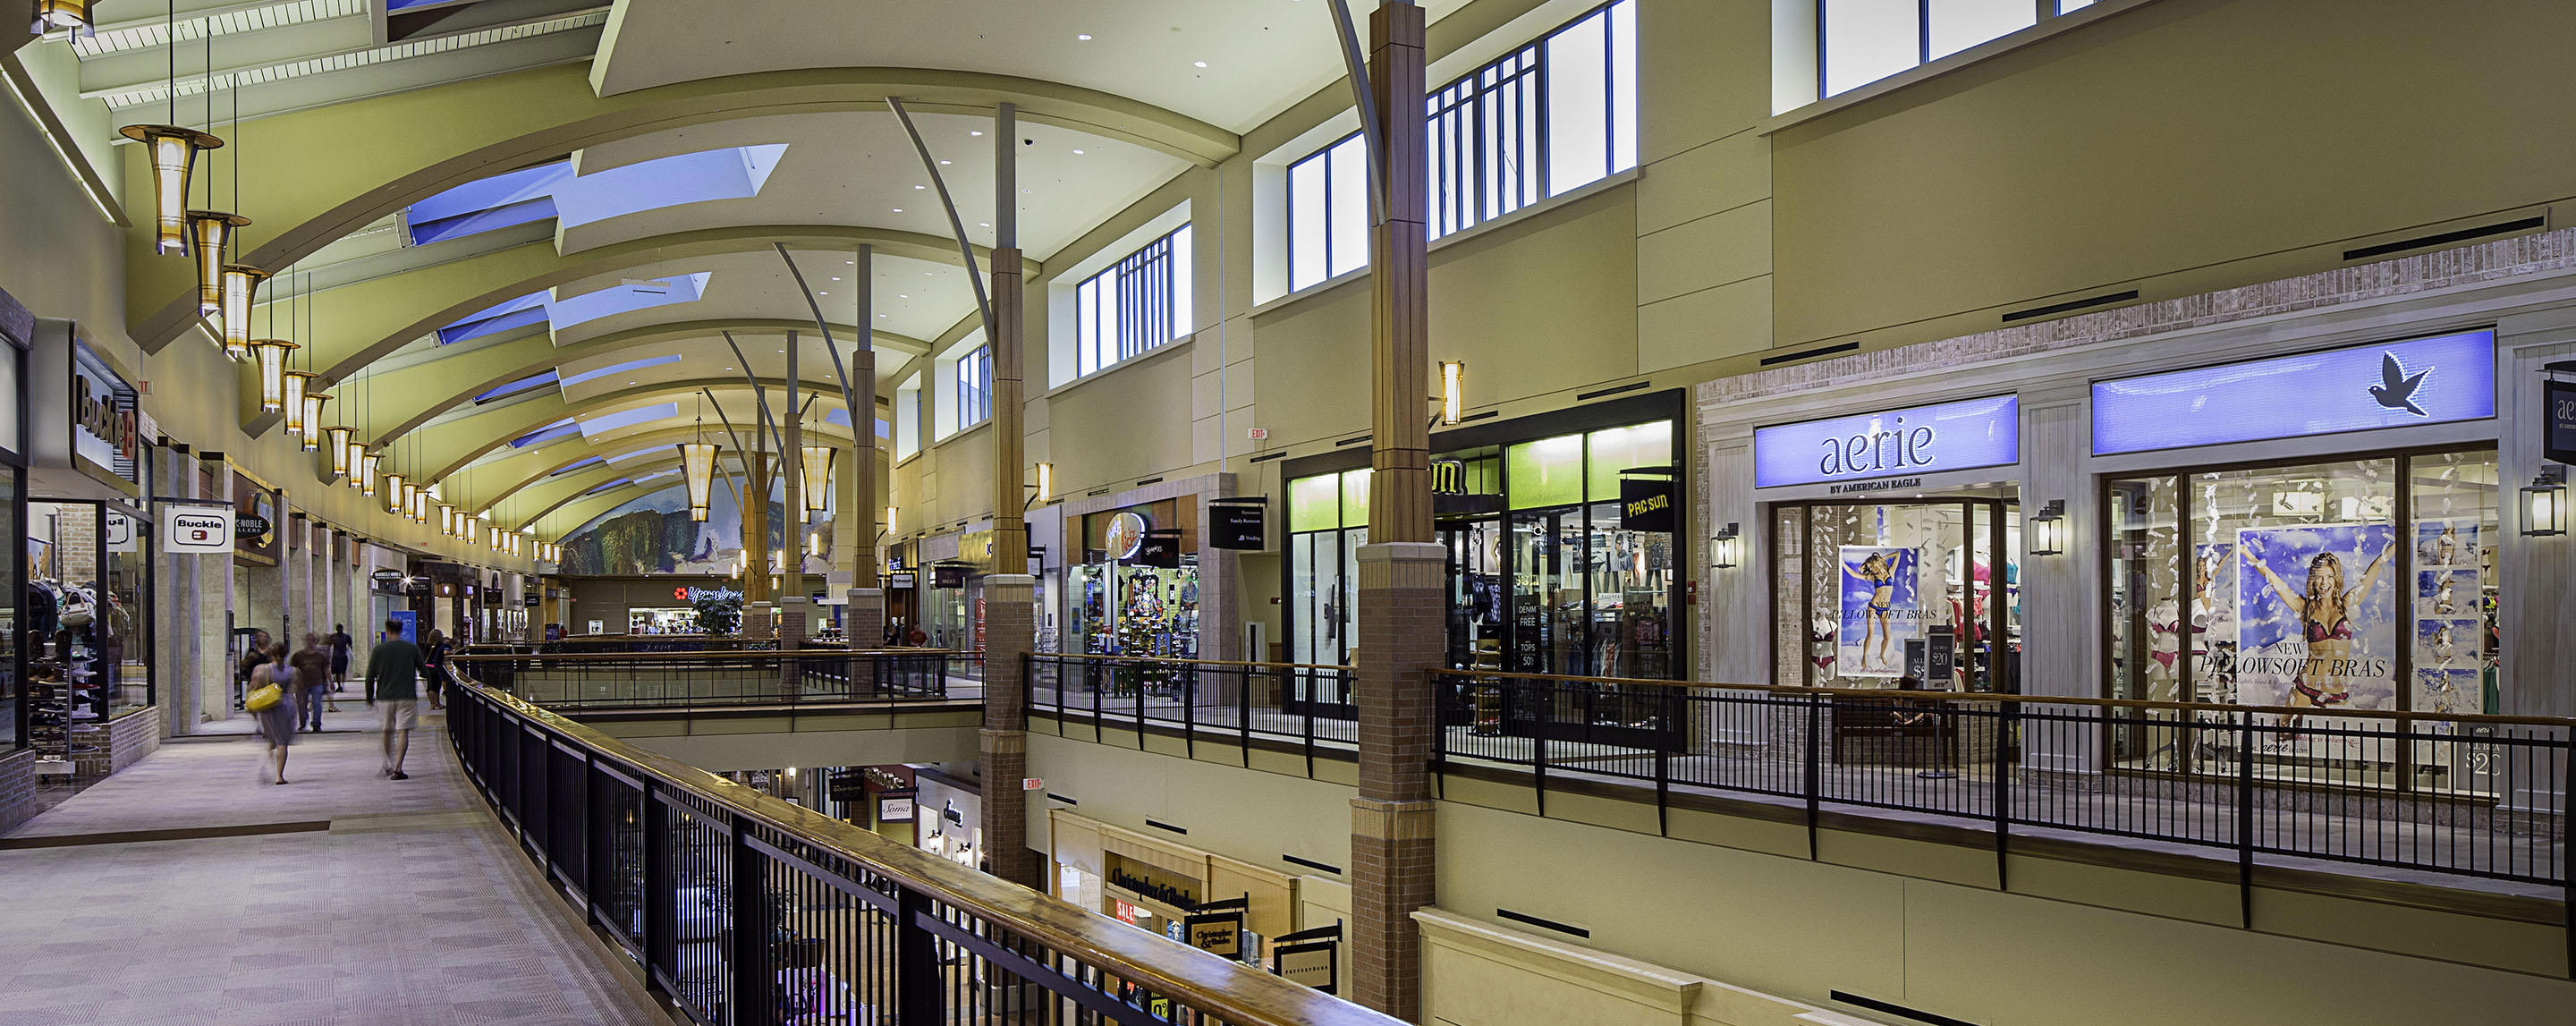 The upper level interior walkway of Jordan Creek Town Center is lined with store fronts as shoppers walk by.